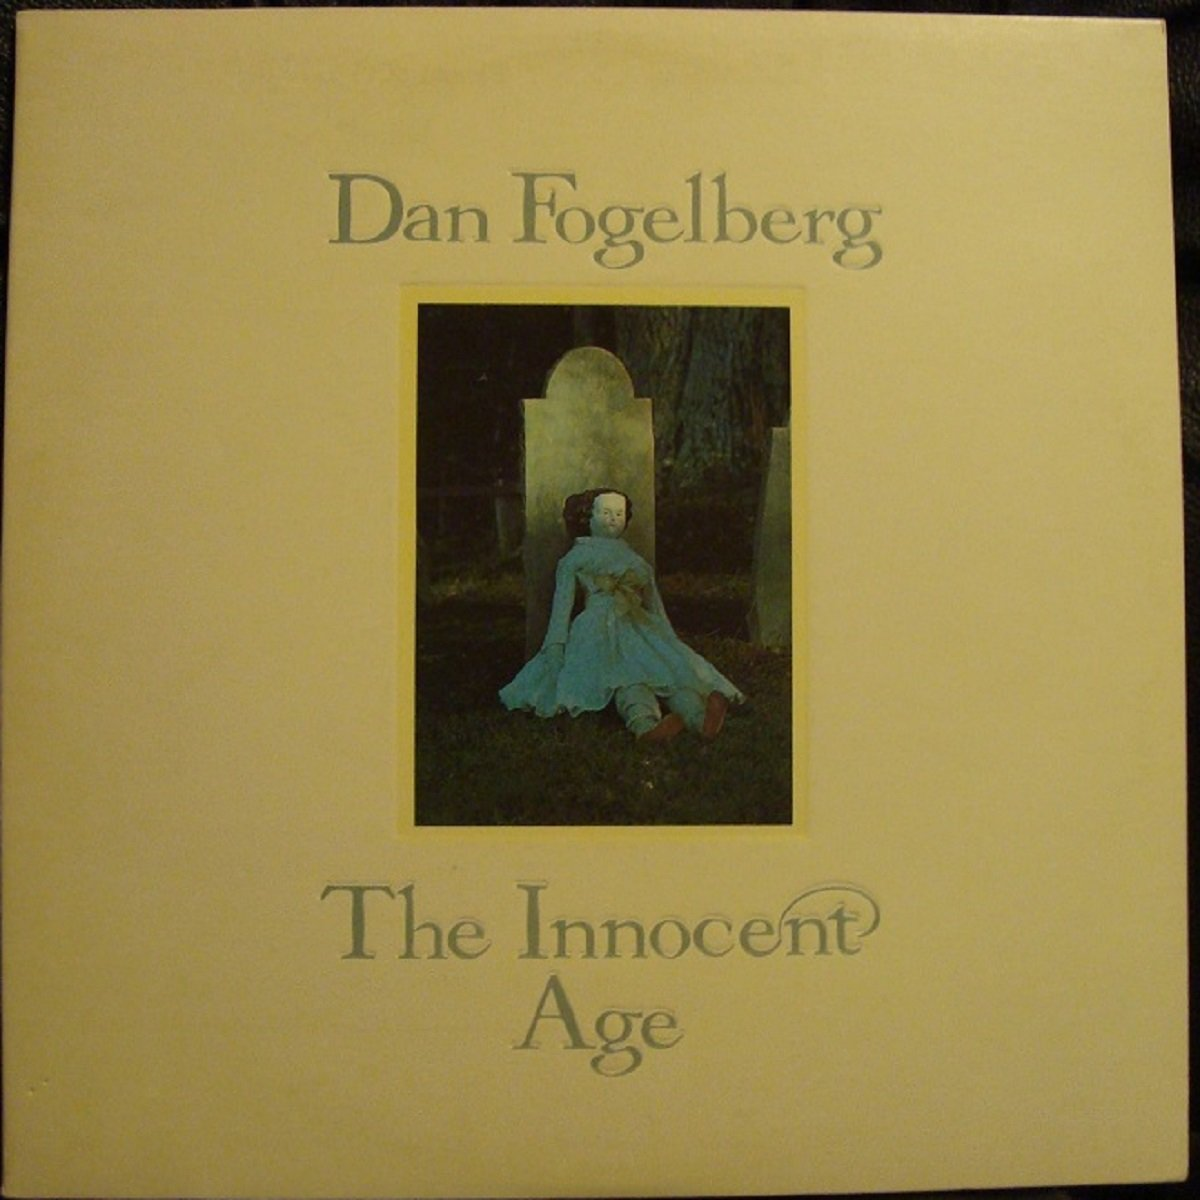 The Innocent Age